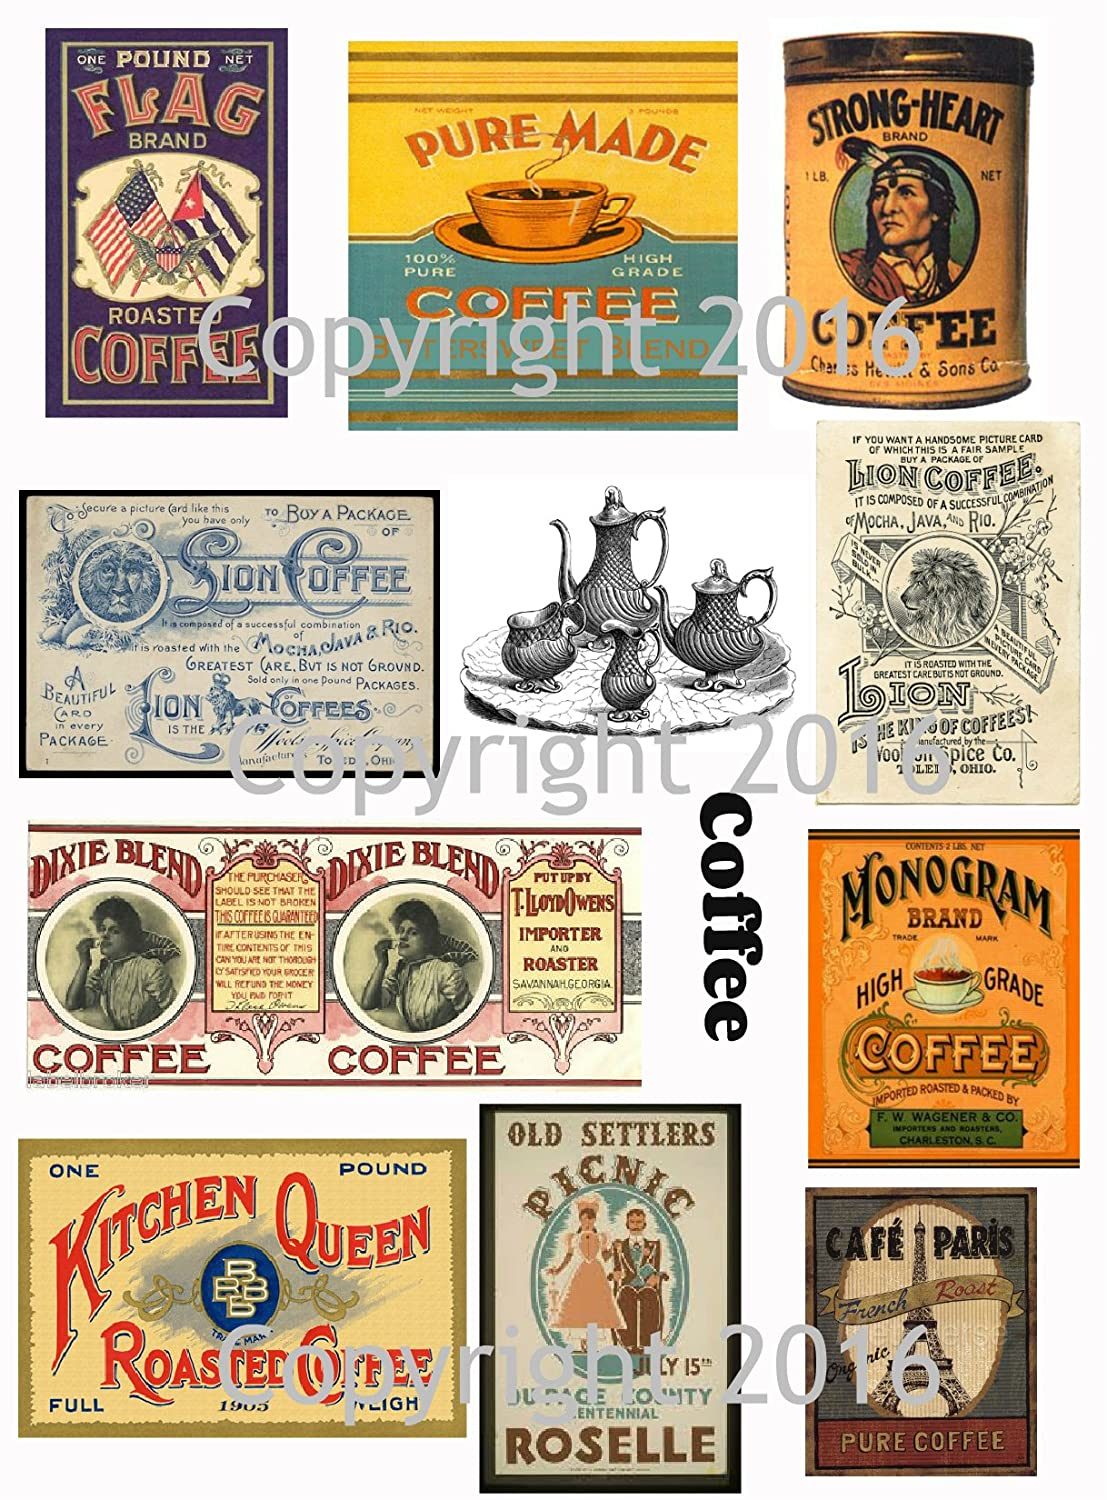 Assorted Vintage Ephemera Coffee Label Images #2 on Collage Sheet for Photo Art, Scrapbooking, Collage, Decoupage Paper Moon Media